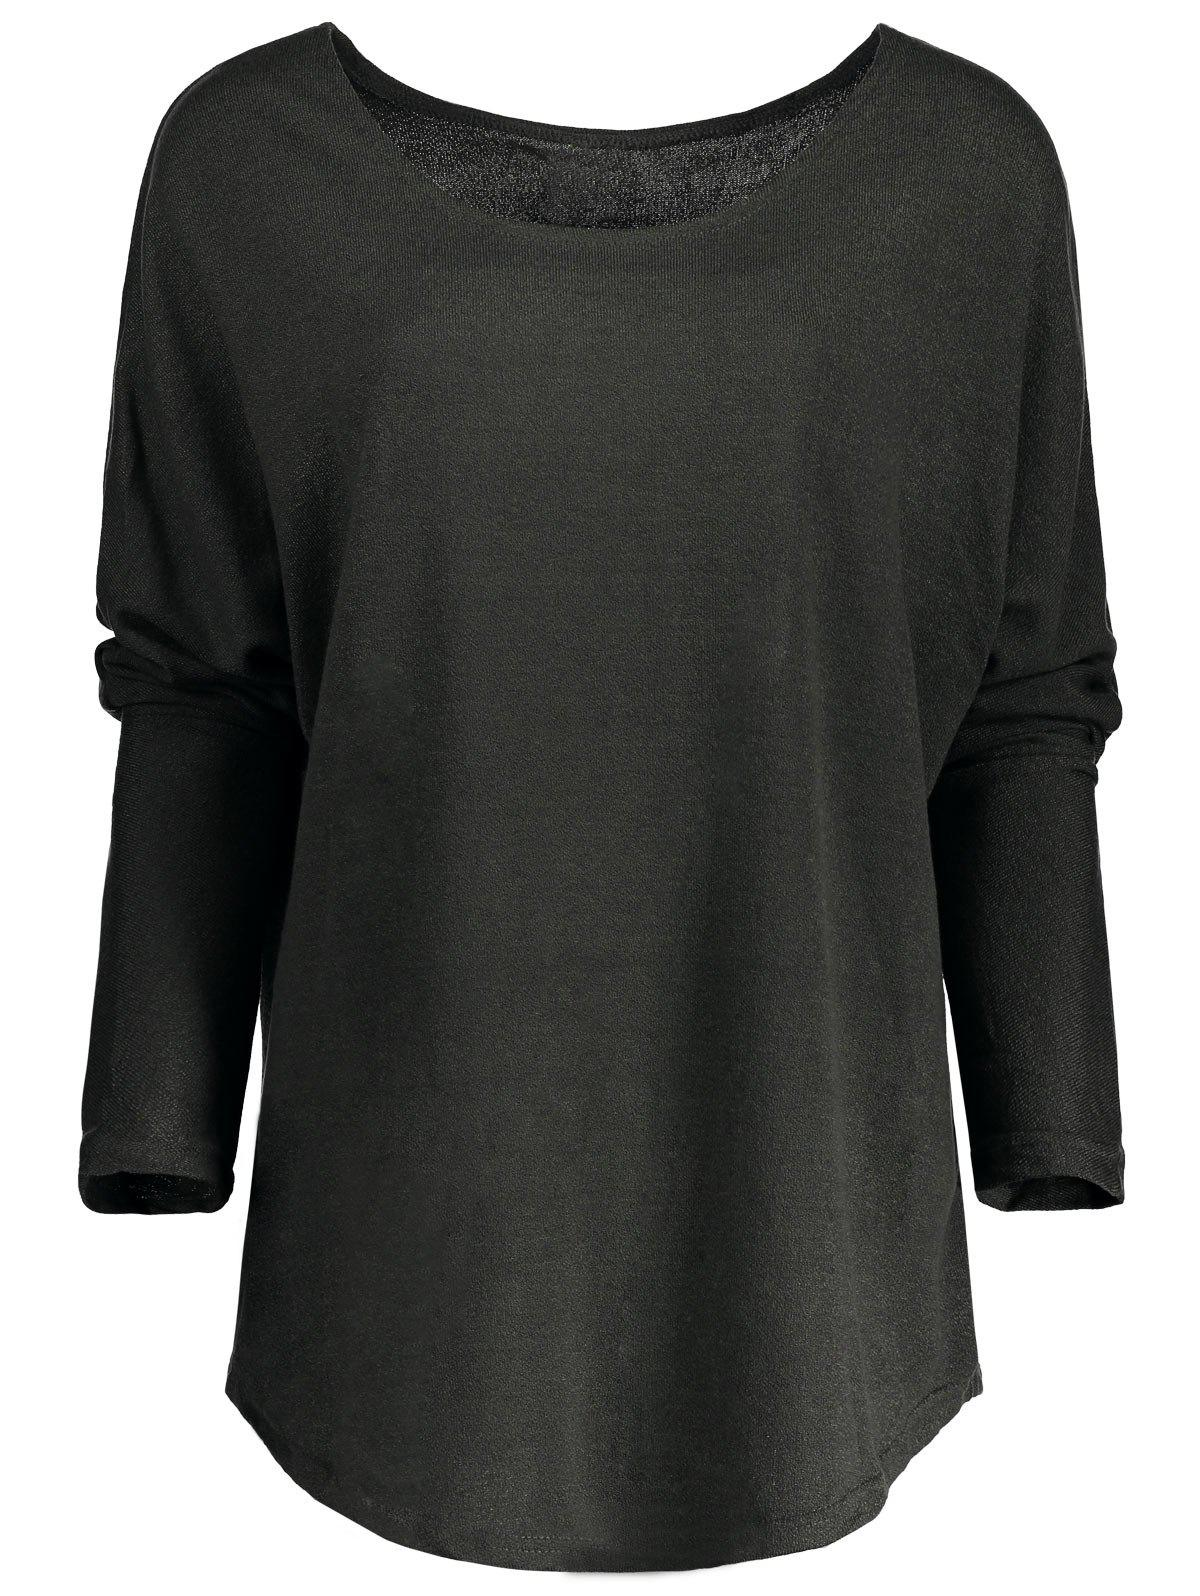 Womens Stylish Scoop Neck Asymmetrical Long Sleeve SweaterWOMEN<br><br>Size: S; Color: DEEP GRAY; Type: Pullovers; Material: Polyester; Sleeve Length: Full; Collar: Jewel Neck; Style: Fashion; Pattern Type: Solid; Season: Fall,Spring,Winter; Weight: 0.270kg; Package Contents: 1 x Sweater;